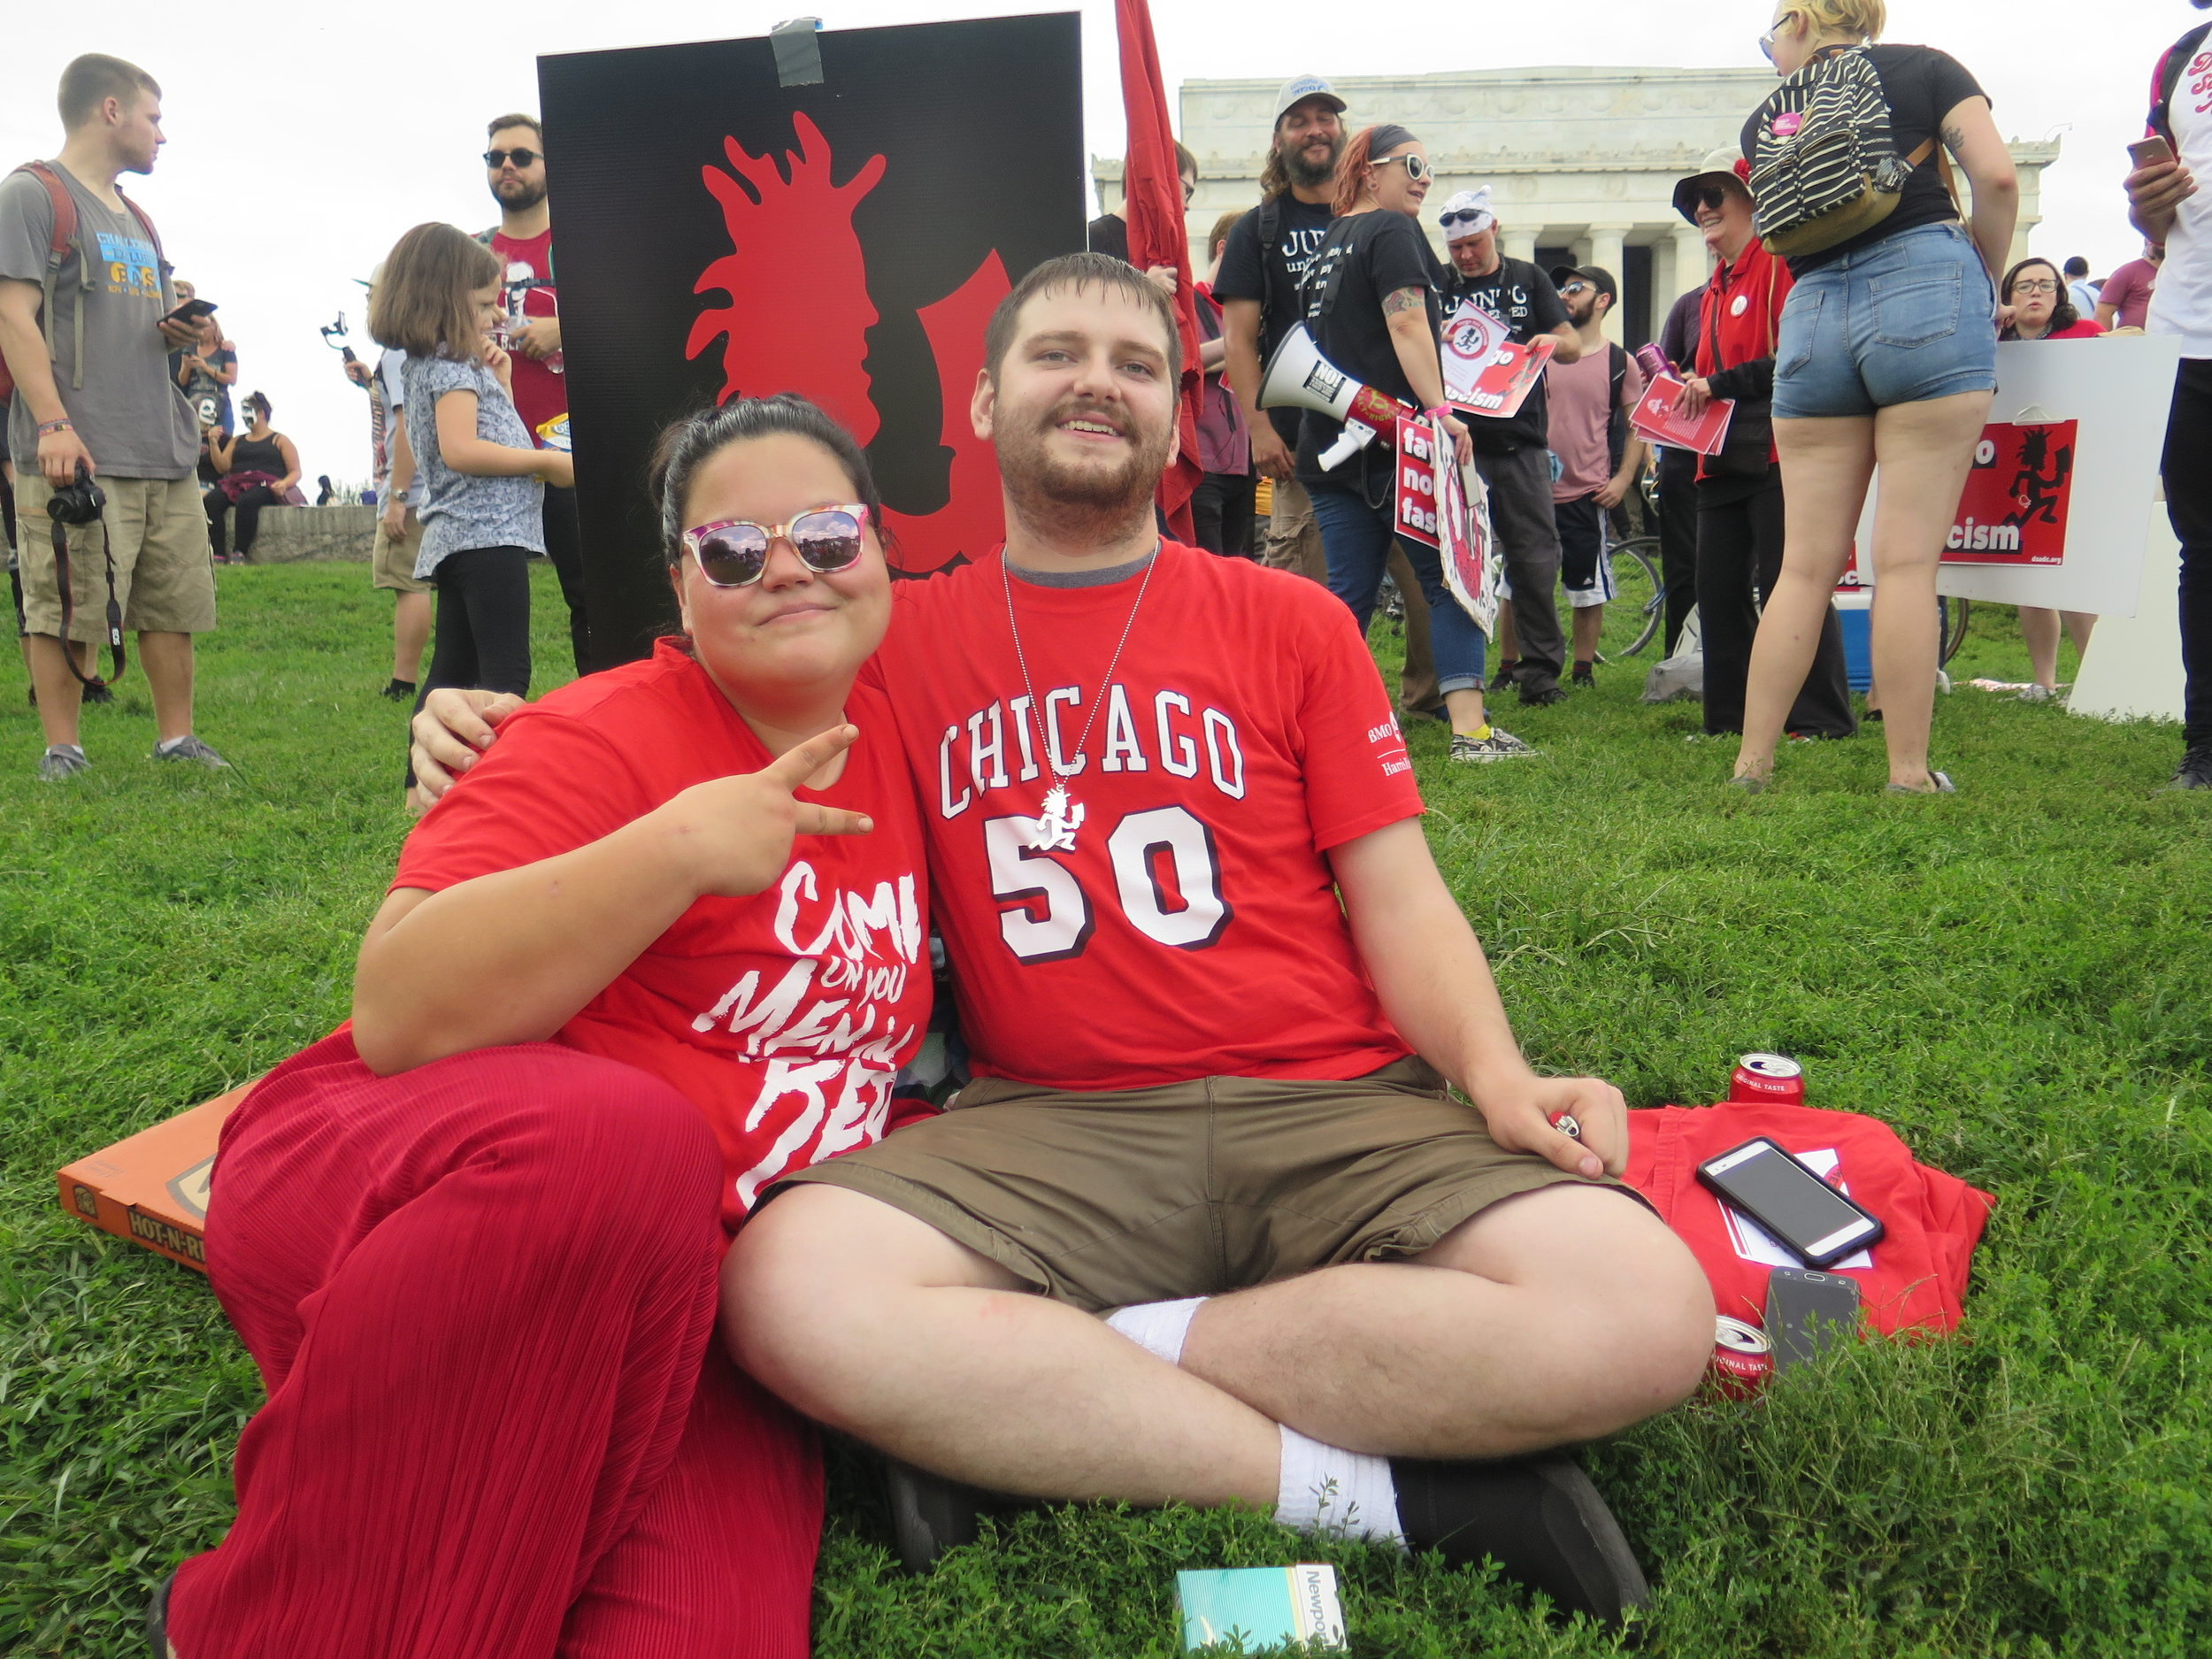 Tina and Mike, representing the Juggalo and Juggalette community of Chicago.